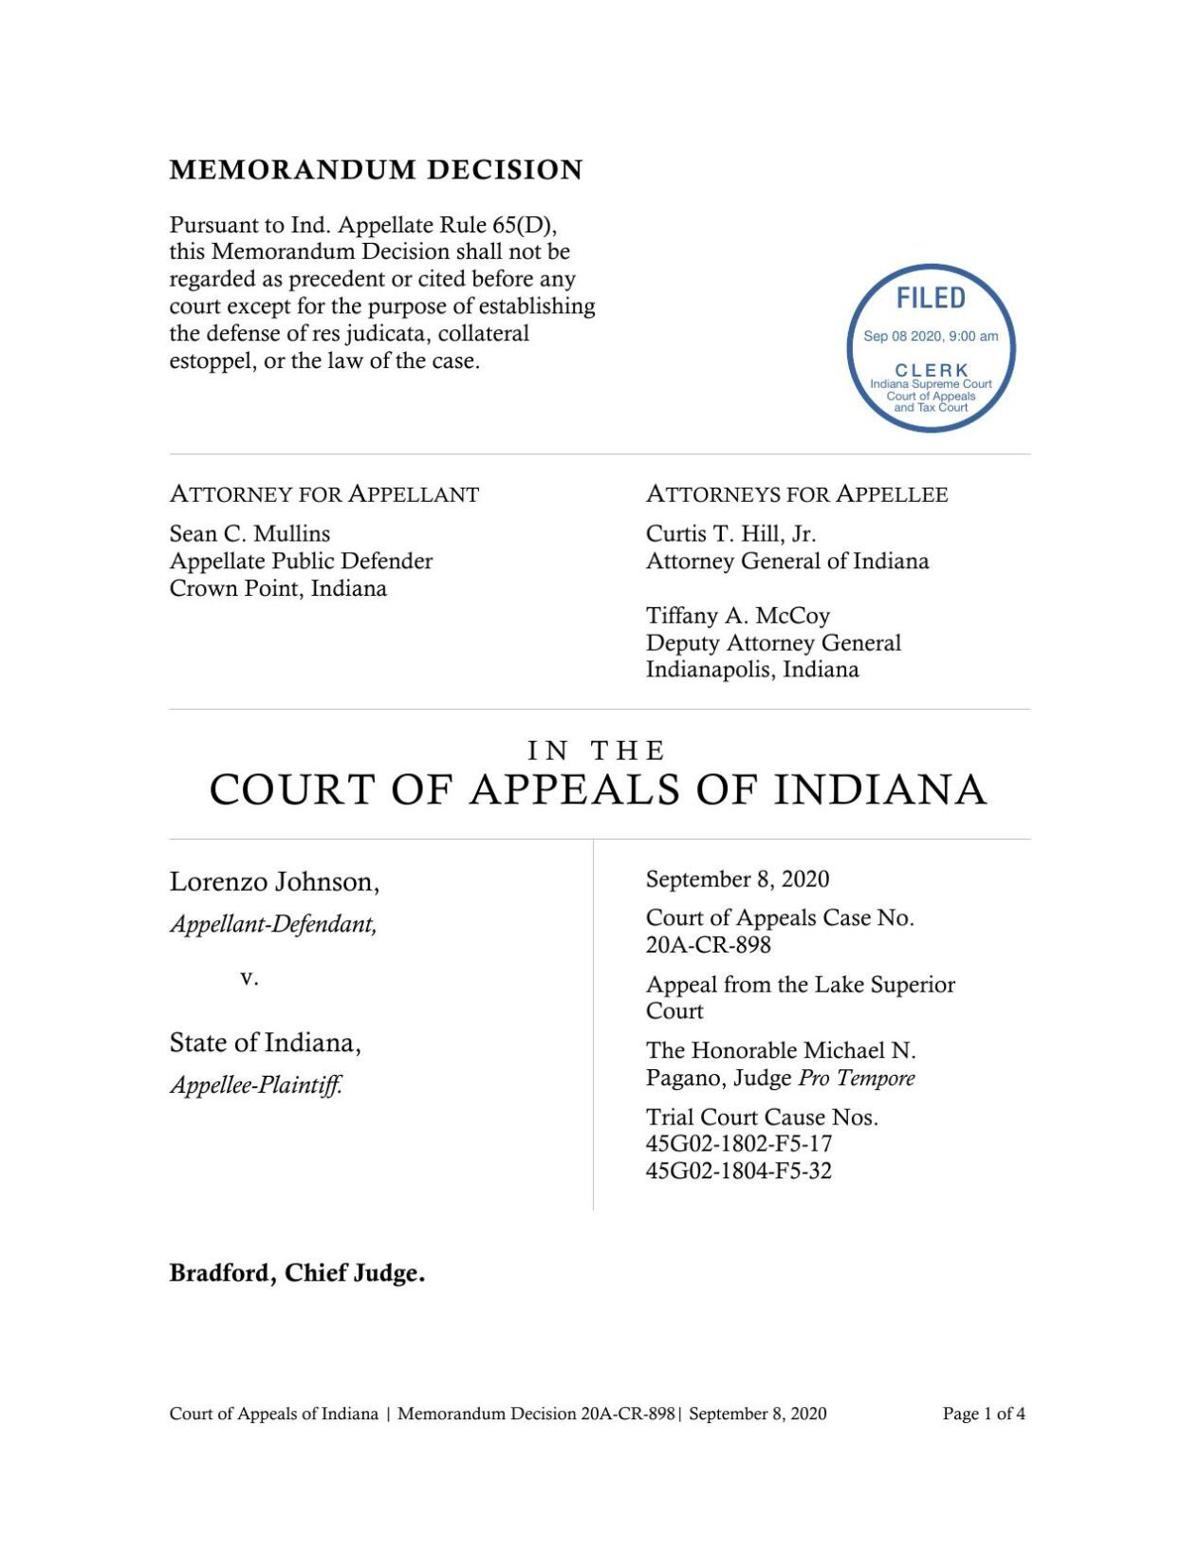 Johnson v. State ruling of Indiana Court of Appeals